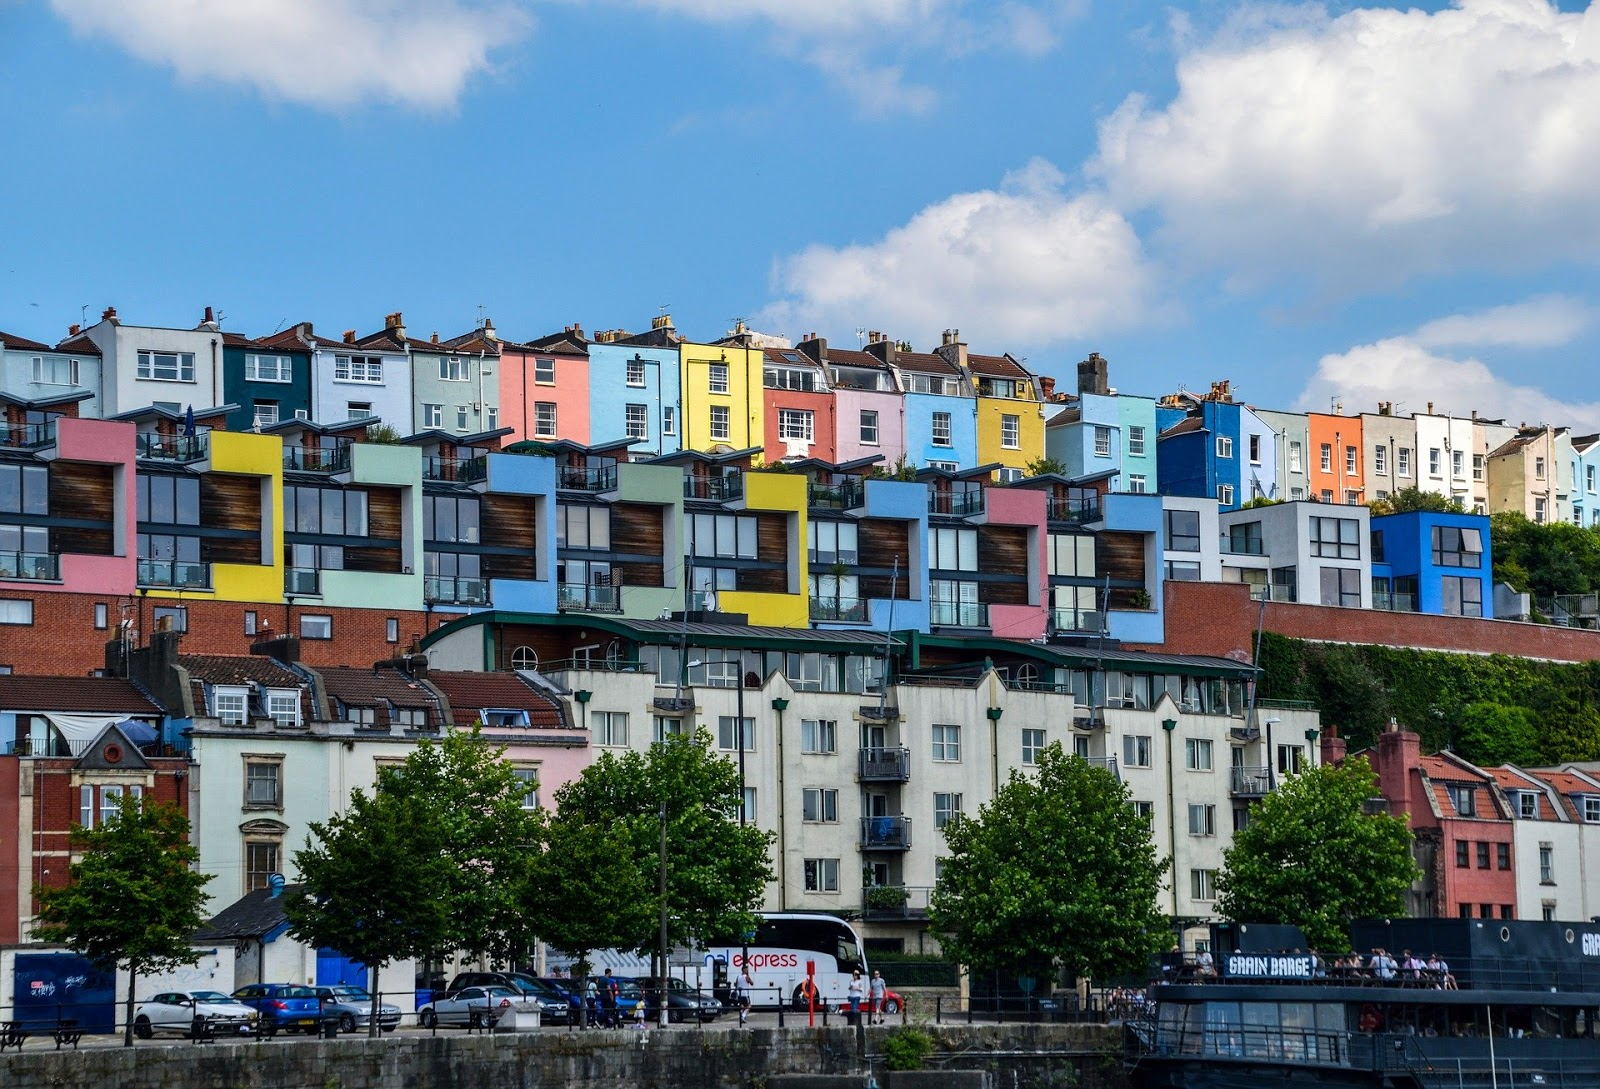 Colourful terraces in Totterdown